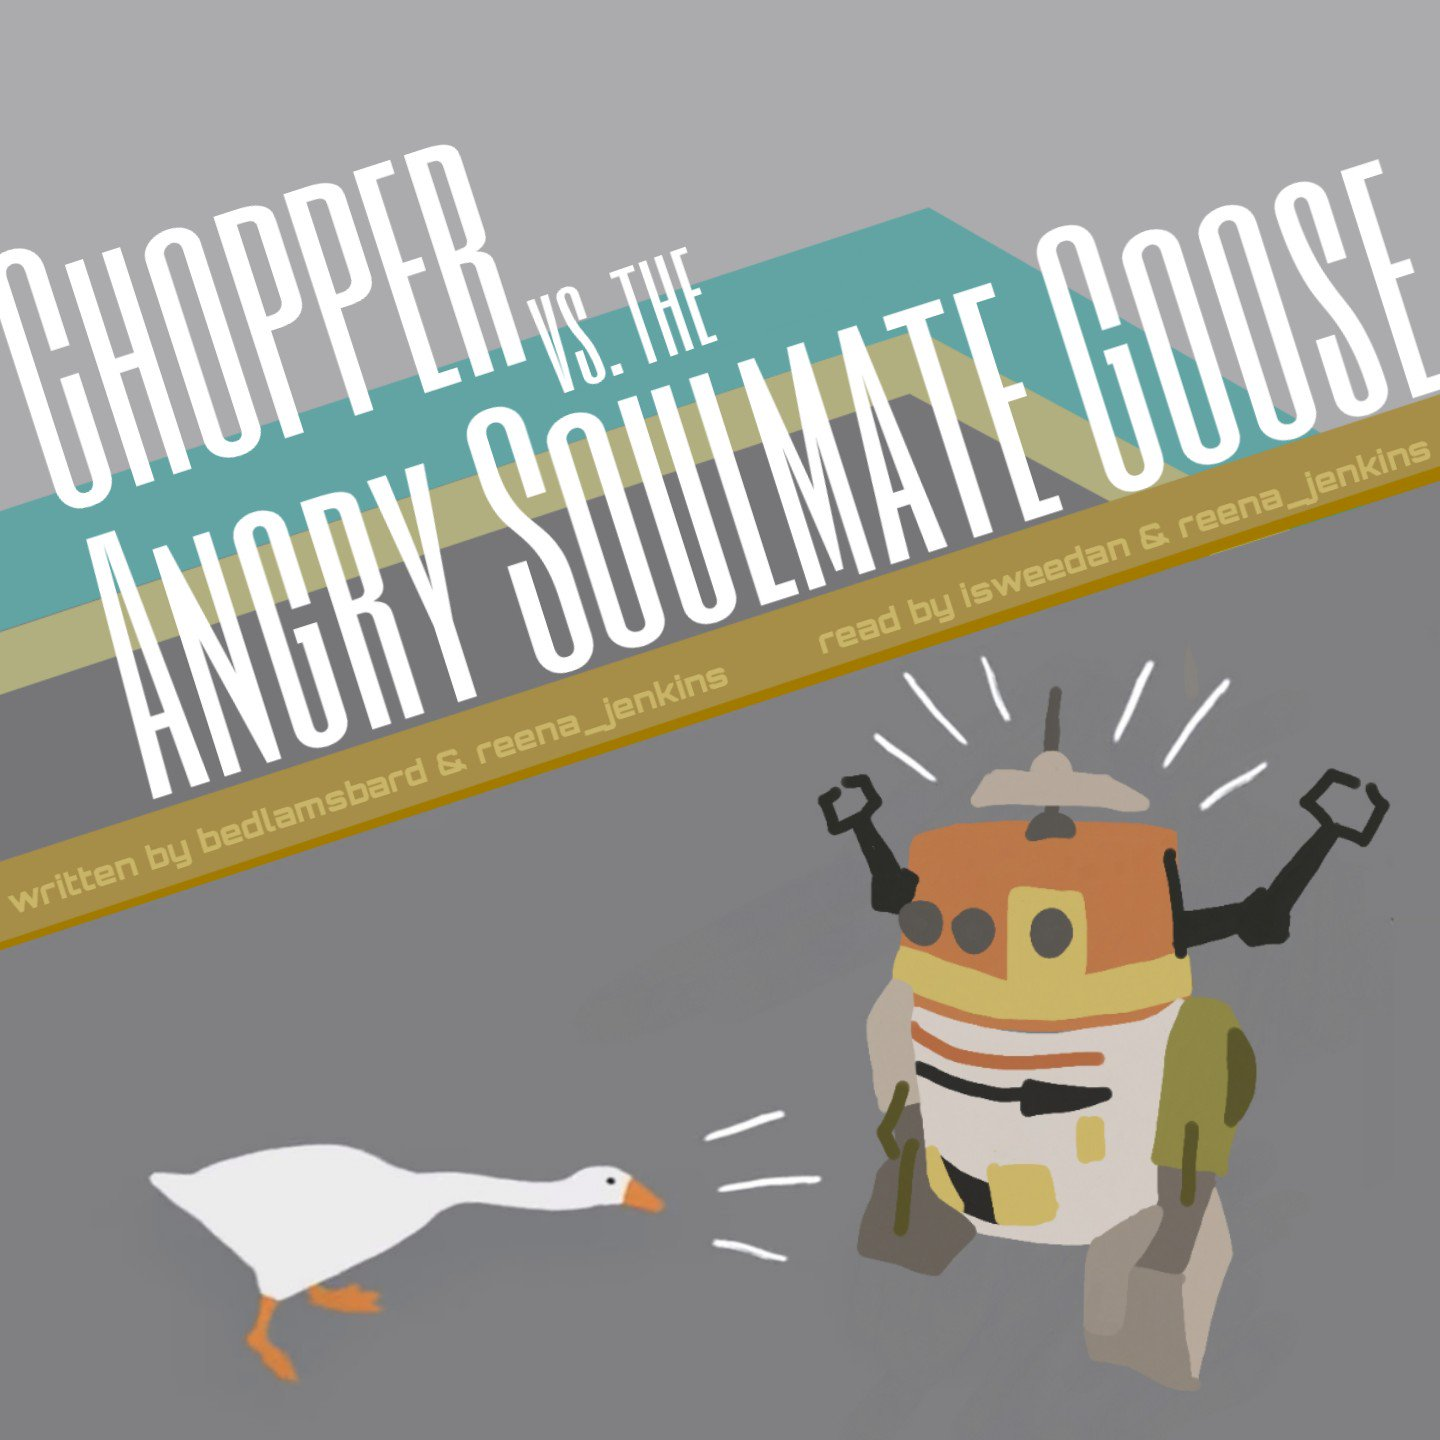 "in the cargo bay of the Ghost, the soulmate goose is screaming at chopper. chopper's arms are raised. chopper is screaming back at the soulmate goose. title reads ""Chopper vs. the Angry Soulmate Goose - written by bedlamsbard & reena_jenkins, read by isweedan & reena_jenkins"""